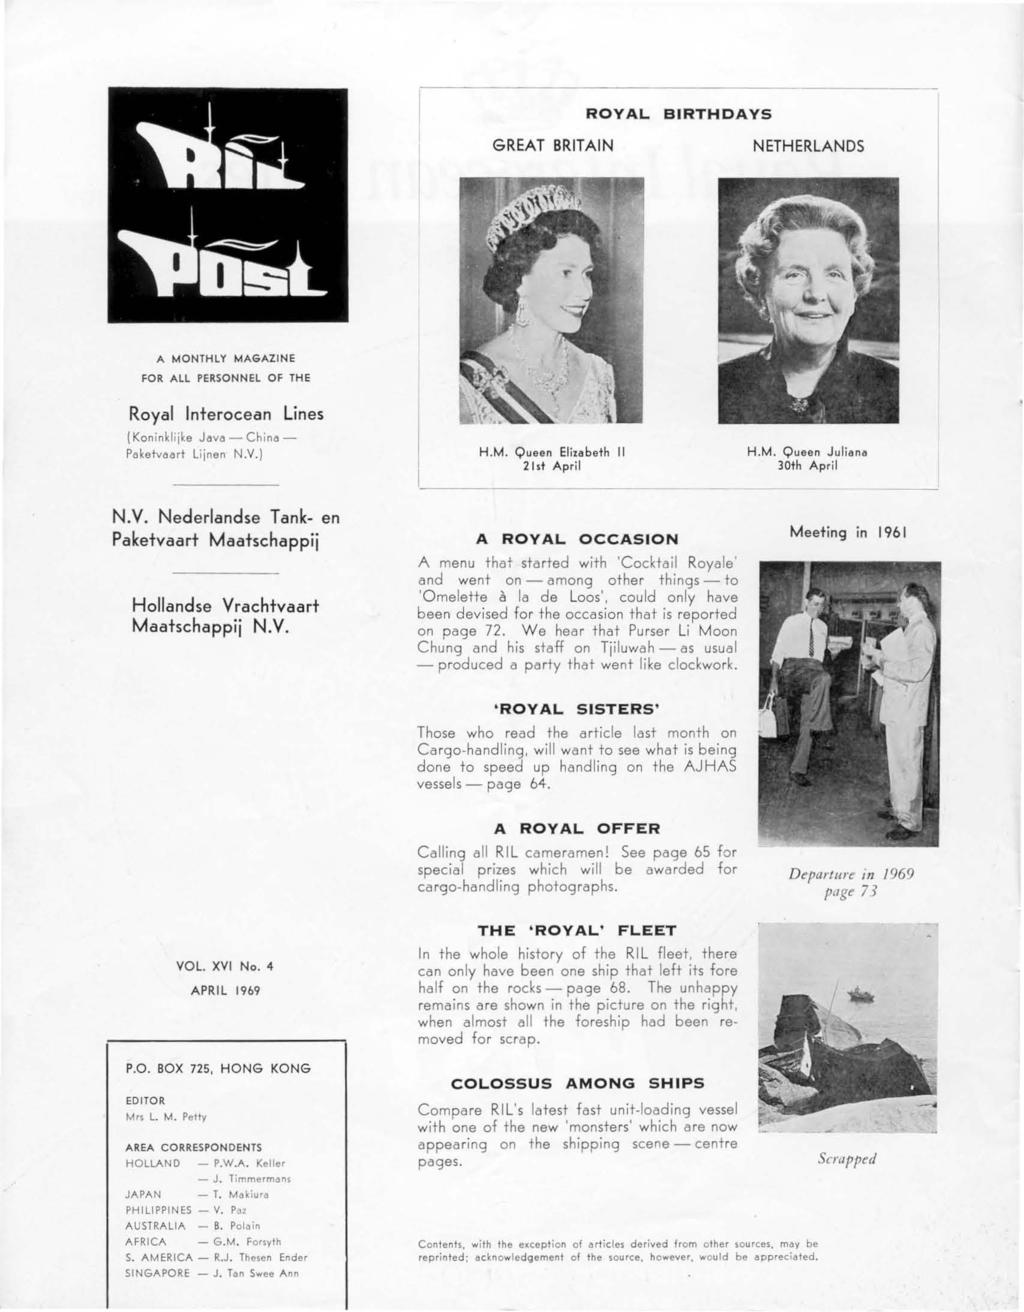 ROYAL BIRTHDAYS GREAT BRITAlN NETHERLANDS A MONTHLY MAGAZINE FOR ALL PERSONNEL OF THE Royal Interoce an Lines (Kon inklij ke Jeve - Chine Poketveert lijnen N.V. ) H.M. Queen Eliltlbeth II 21 st April H.